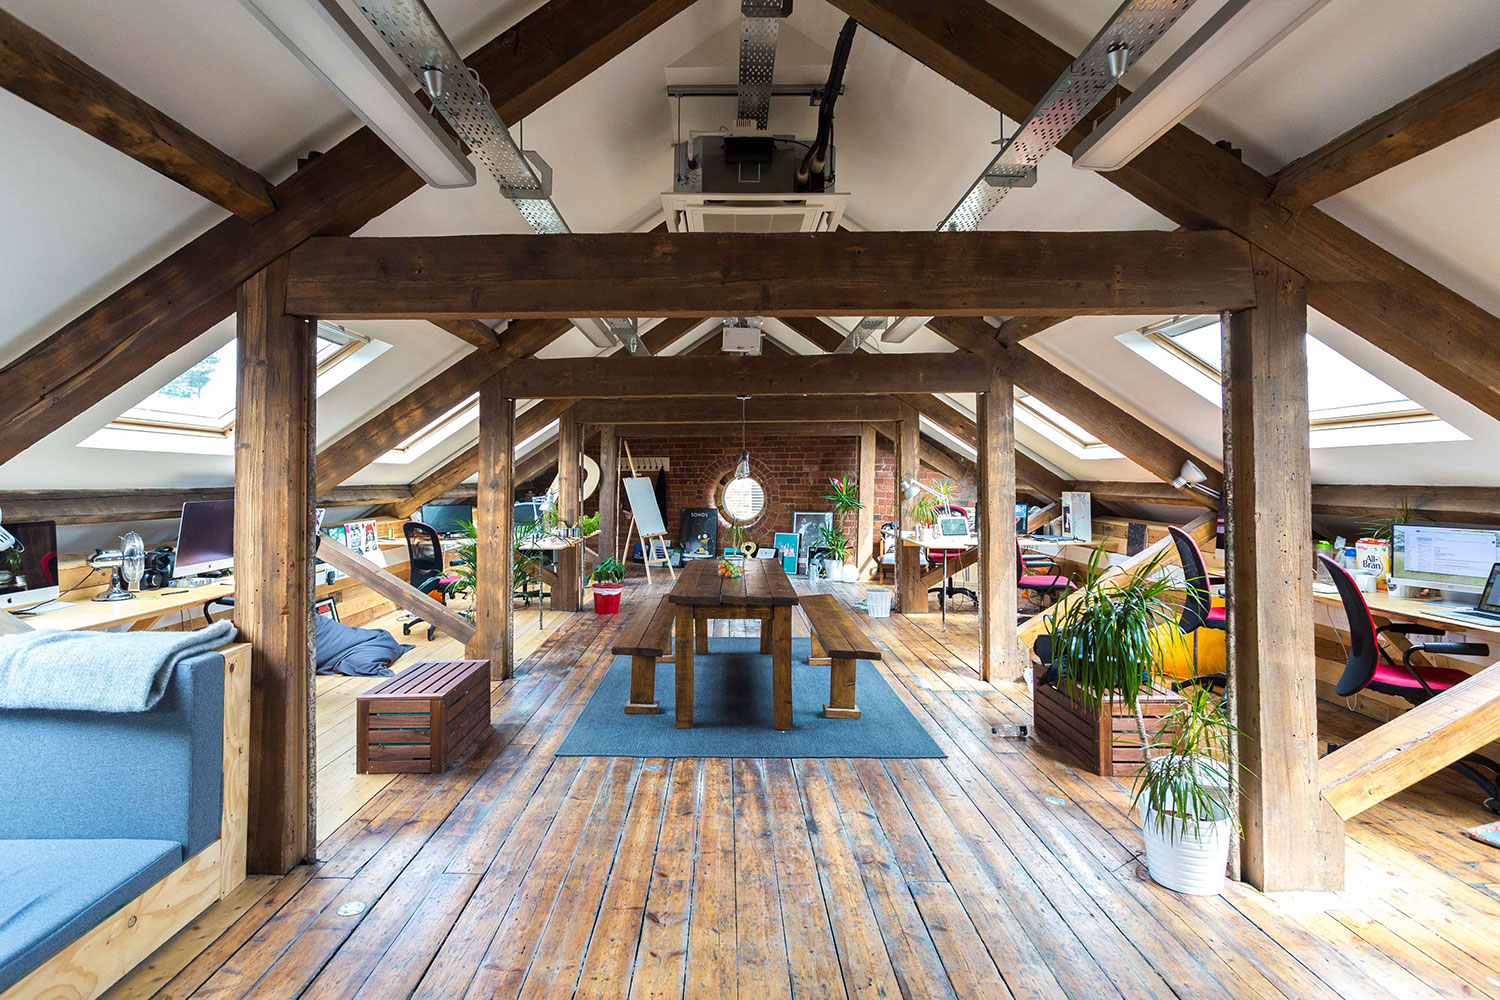 Inspired By Creative Workspaces At Companies Such As Pixar And Google, Duke  Studios In Leeds UK Decided To Create A Similar Space For Creative  Freelancers ...